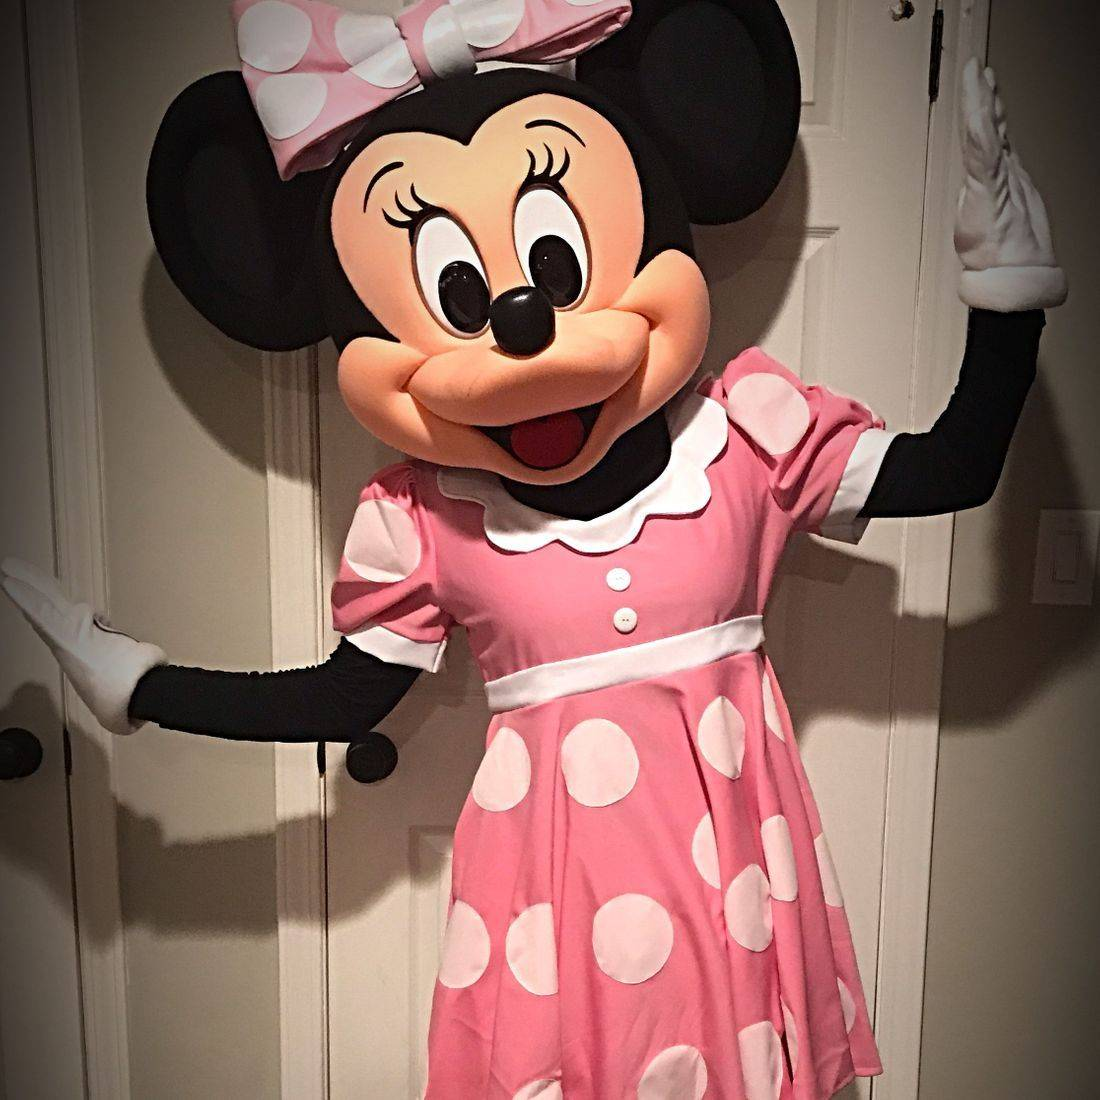 Mouse character in pink dress with white polka dots smiling for the carmera